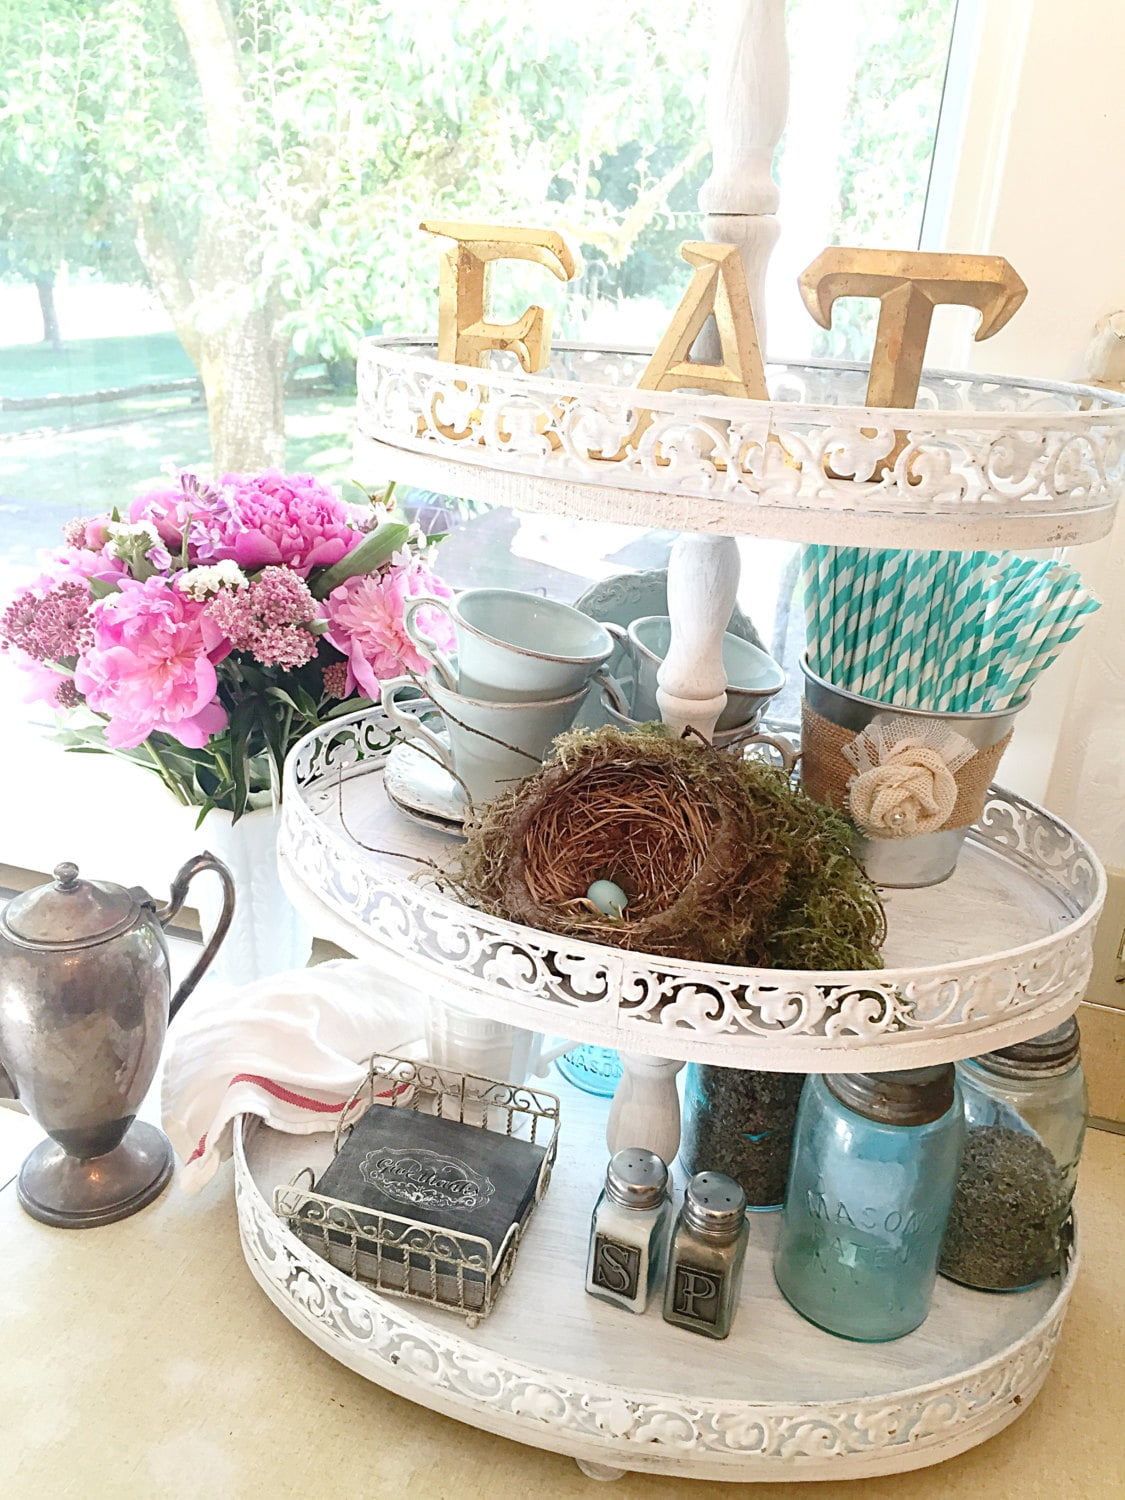 3 Home Decor Trends For Spring Brittany Stager: 3 Tiered Serving Tray White Painted Kitchen Stand Home Decor